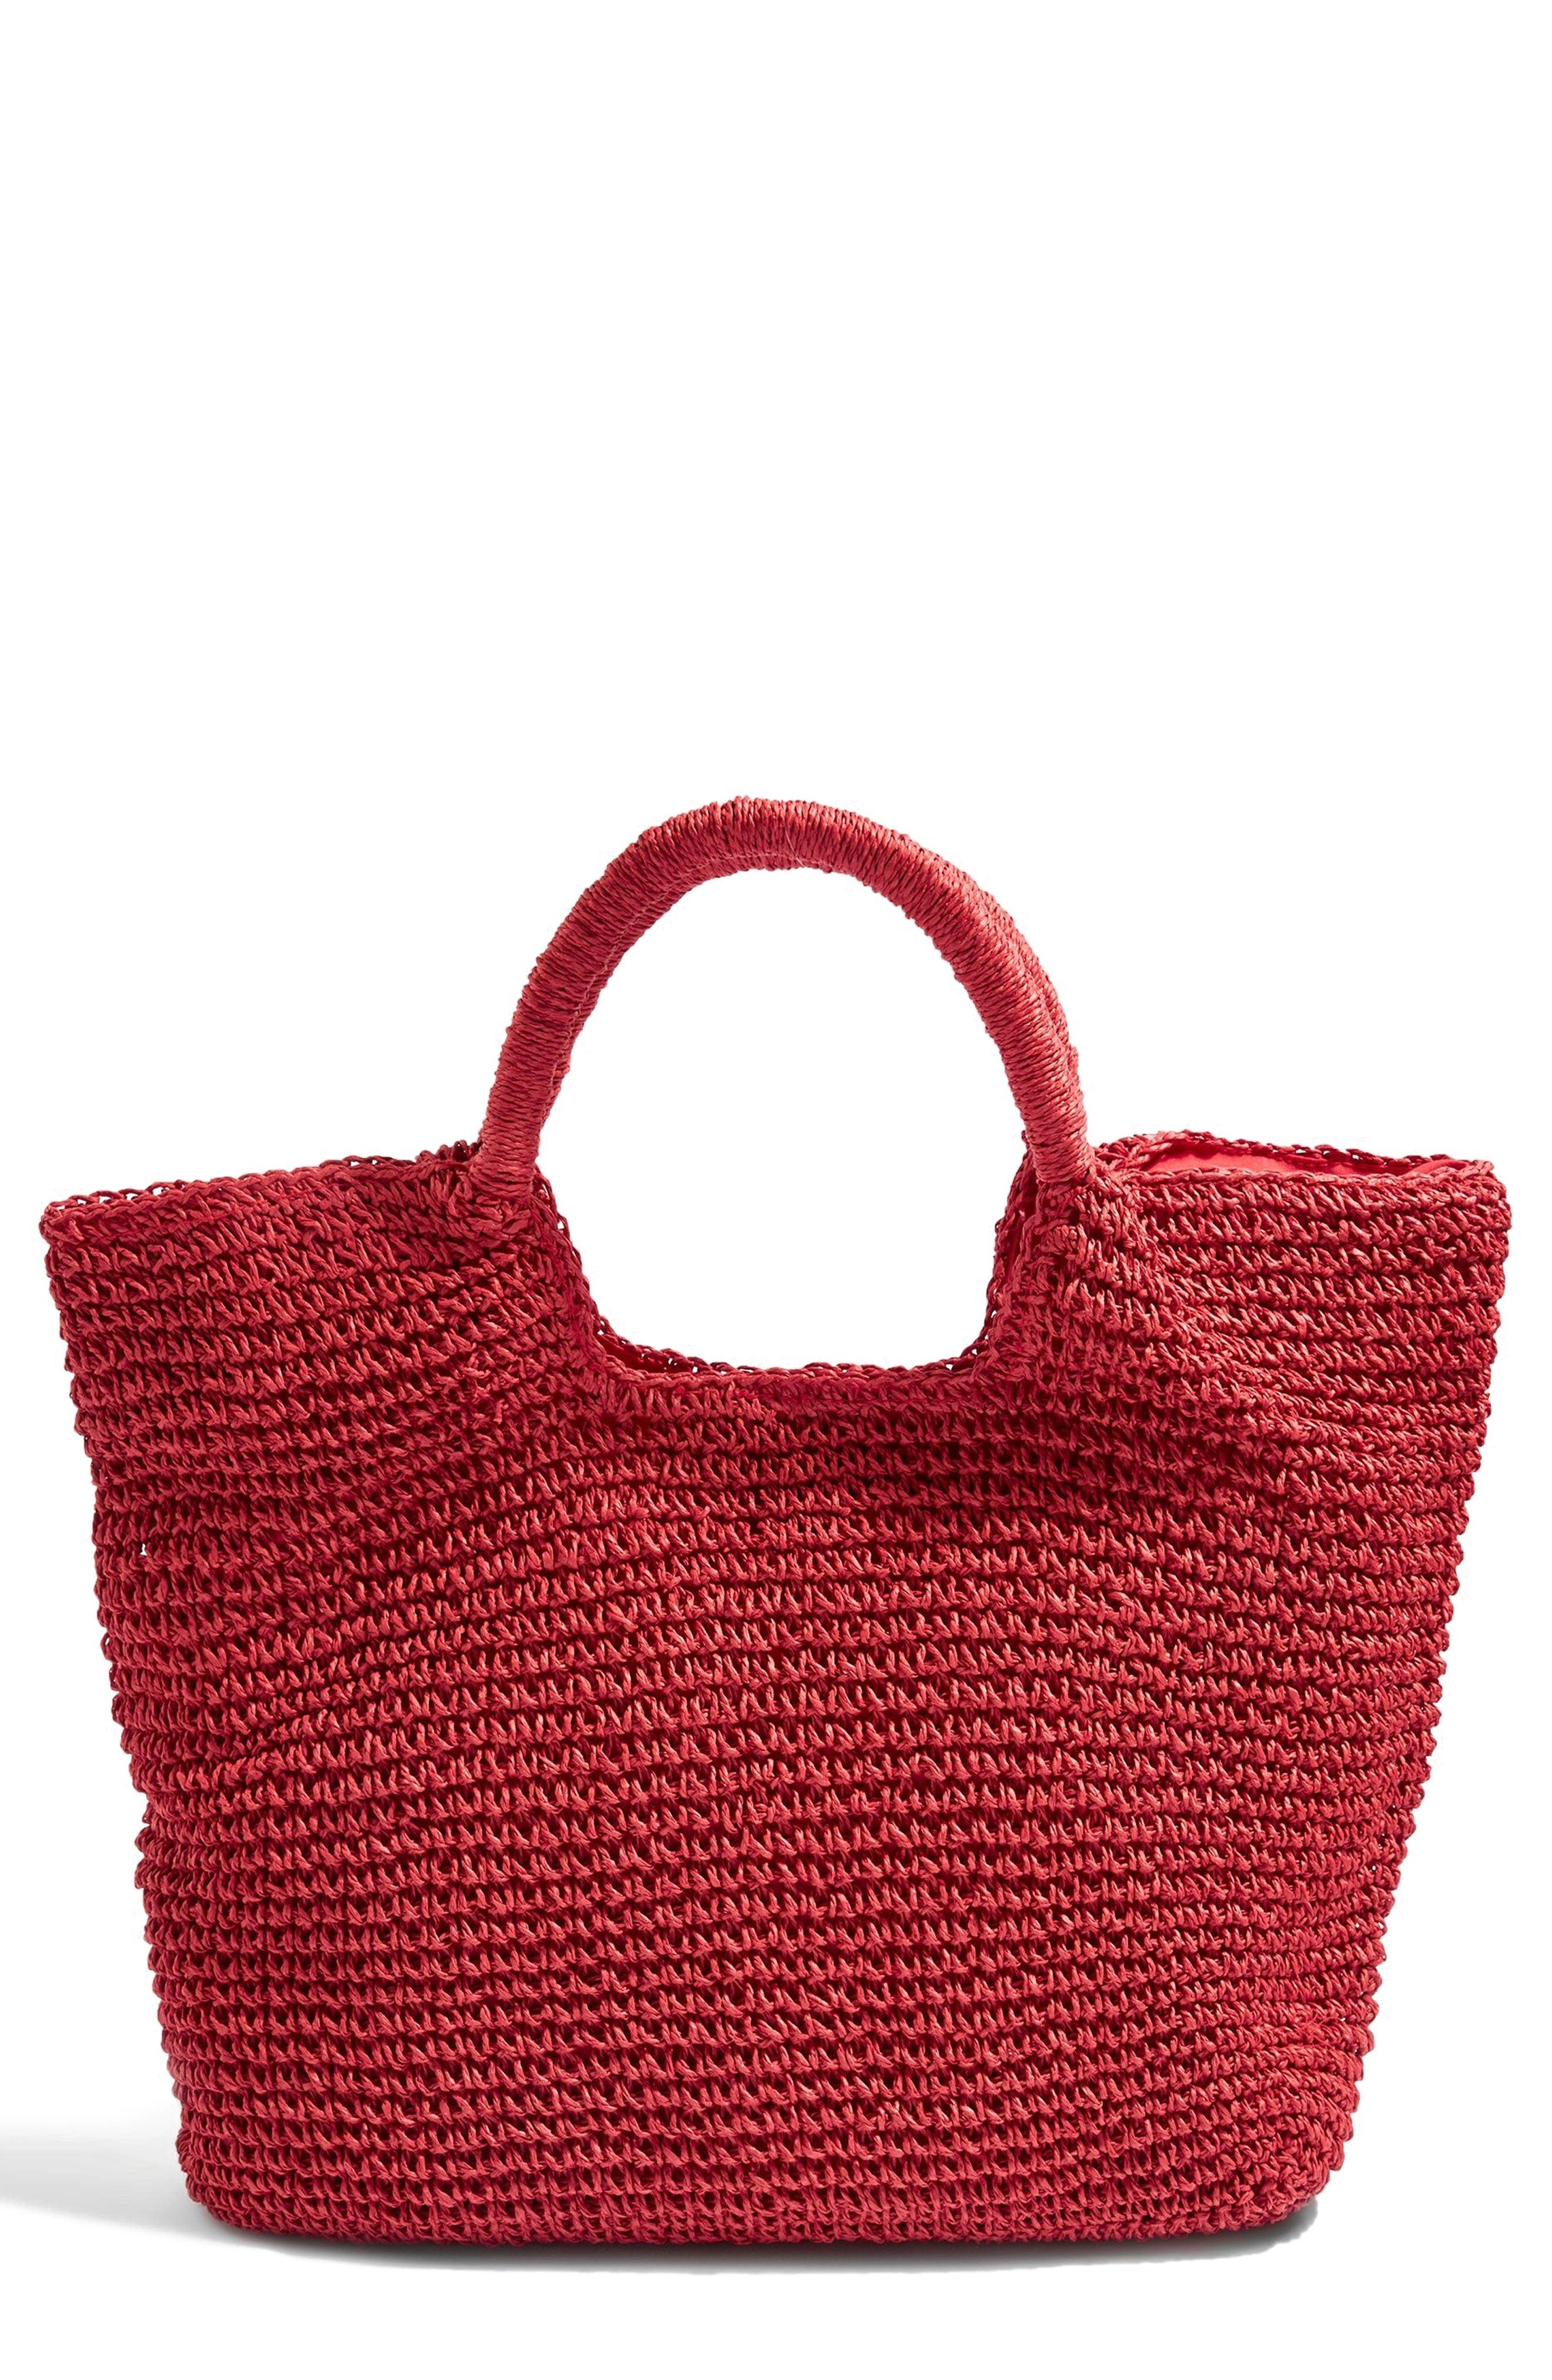 Brighty Straw Tote Bag,                         Main,                         color, Red